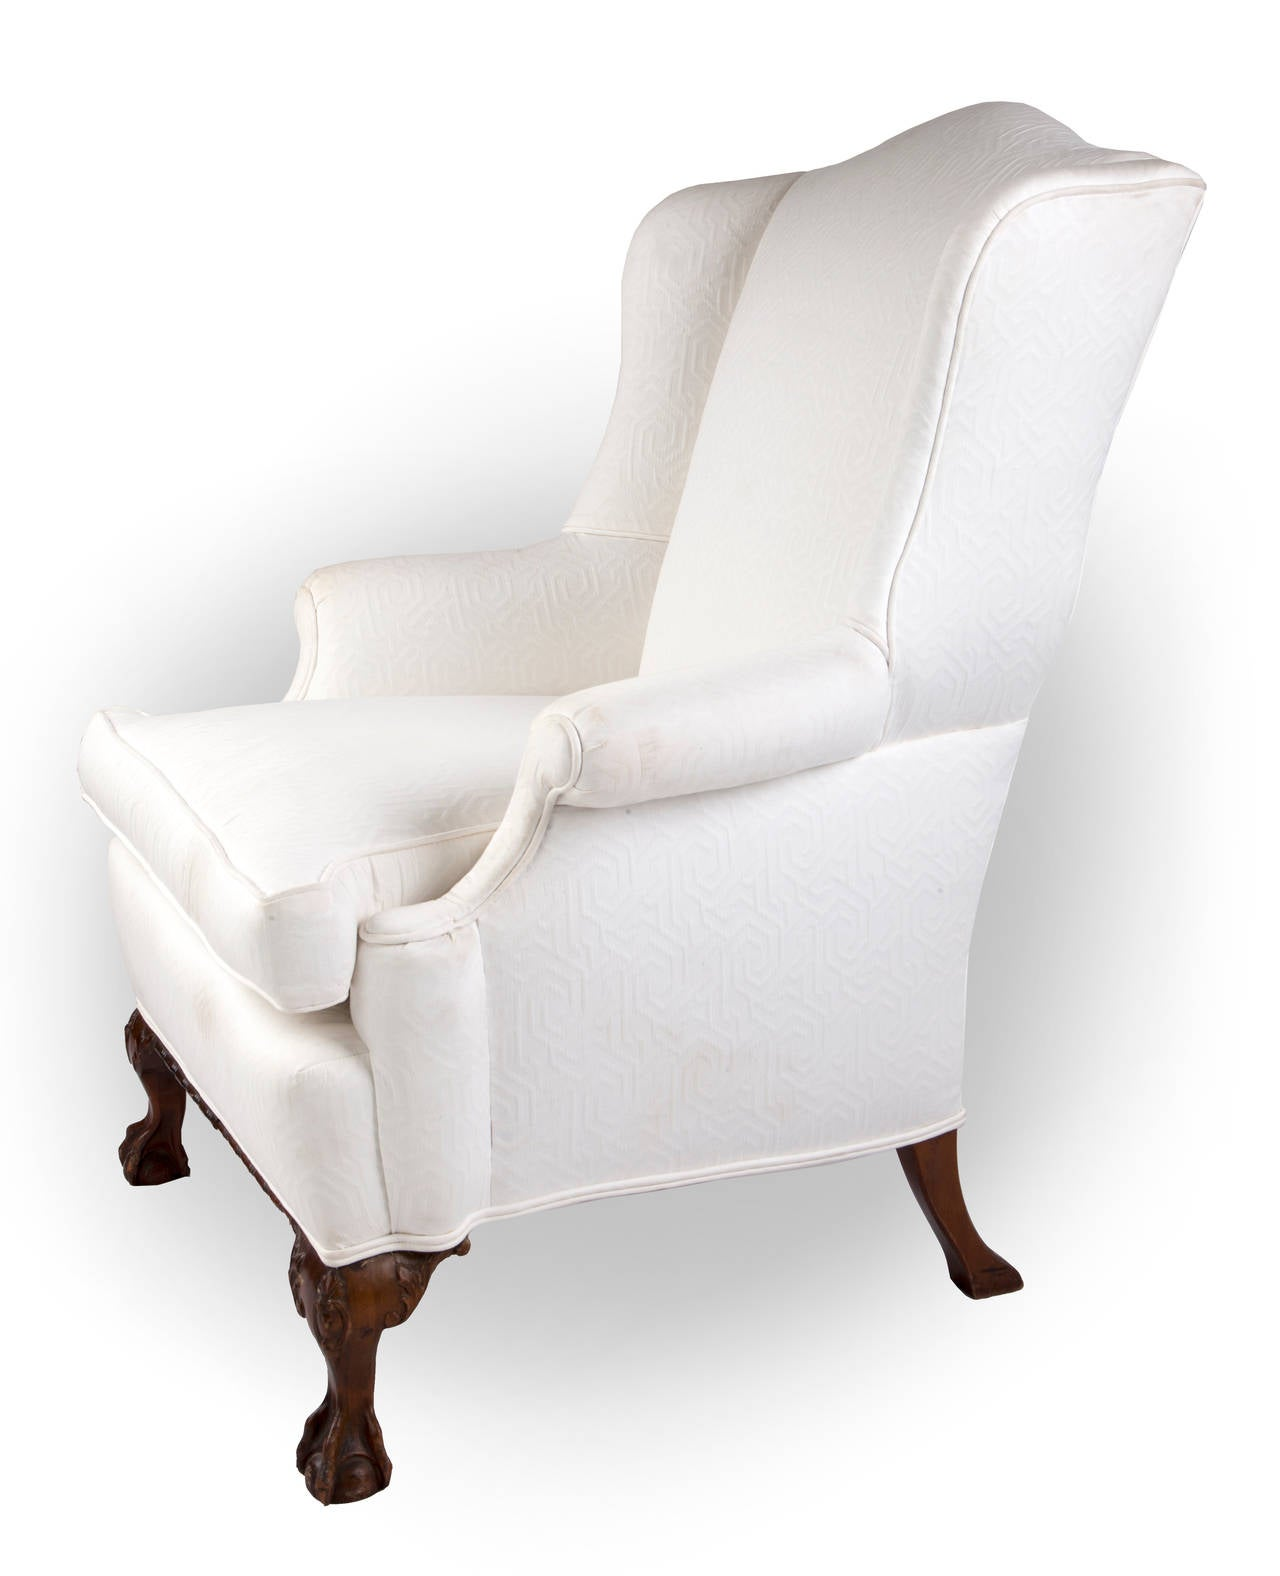 Wingback Chair on Claw and Ball Foot, Mahogany Frame In Good Condition For Sale In Asheville, NC